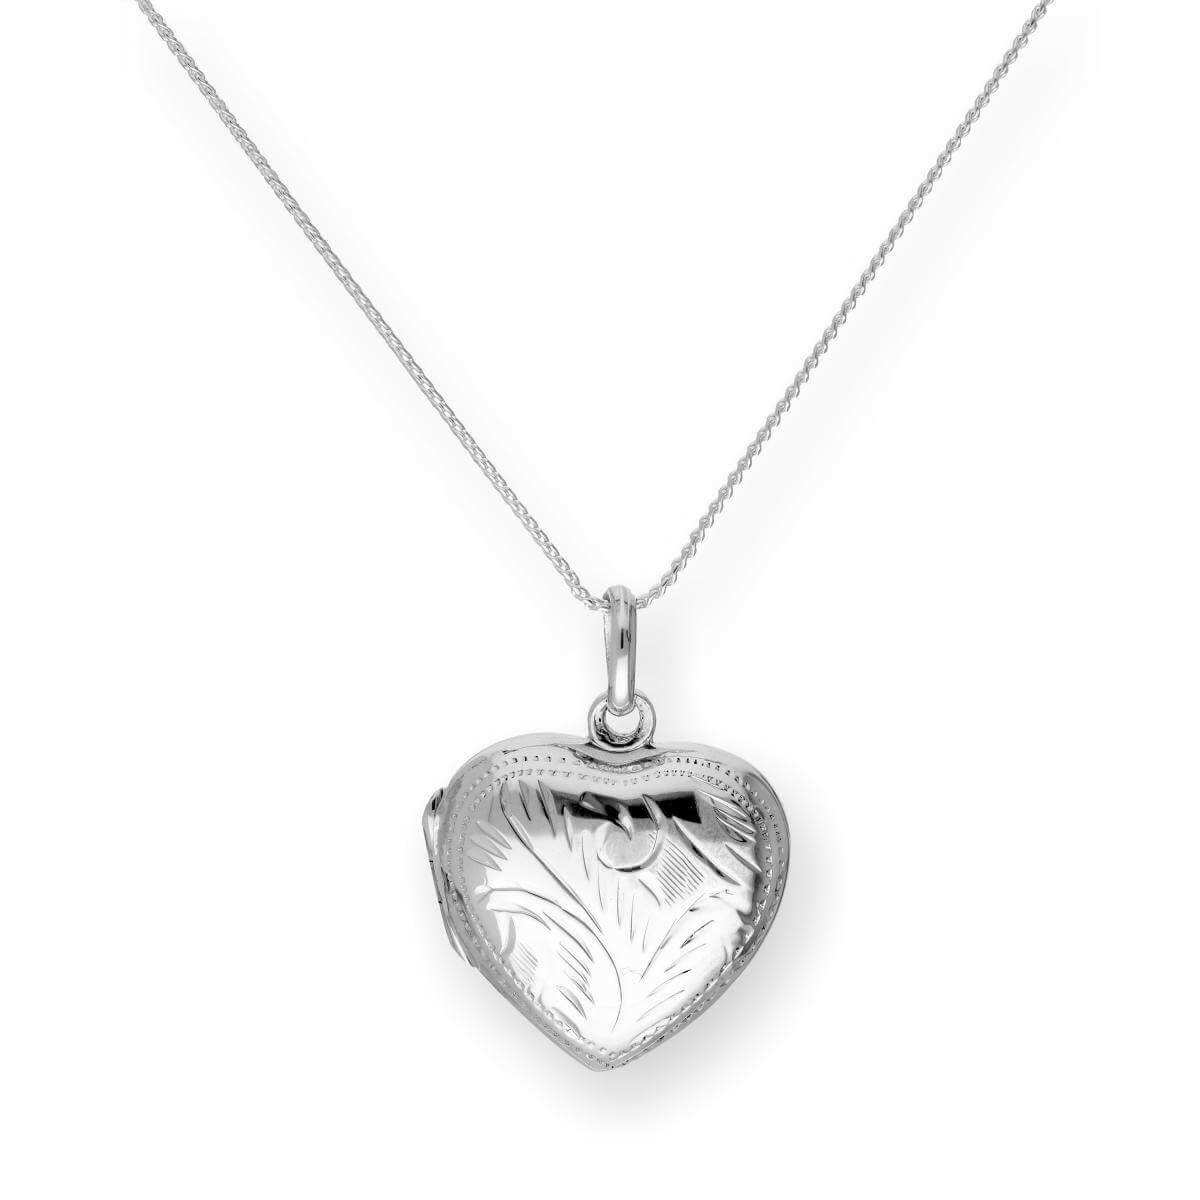 Sterling Silver Engraved Heart Locket on Chain 16 -22 Inches